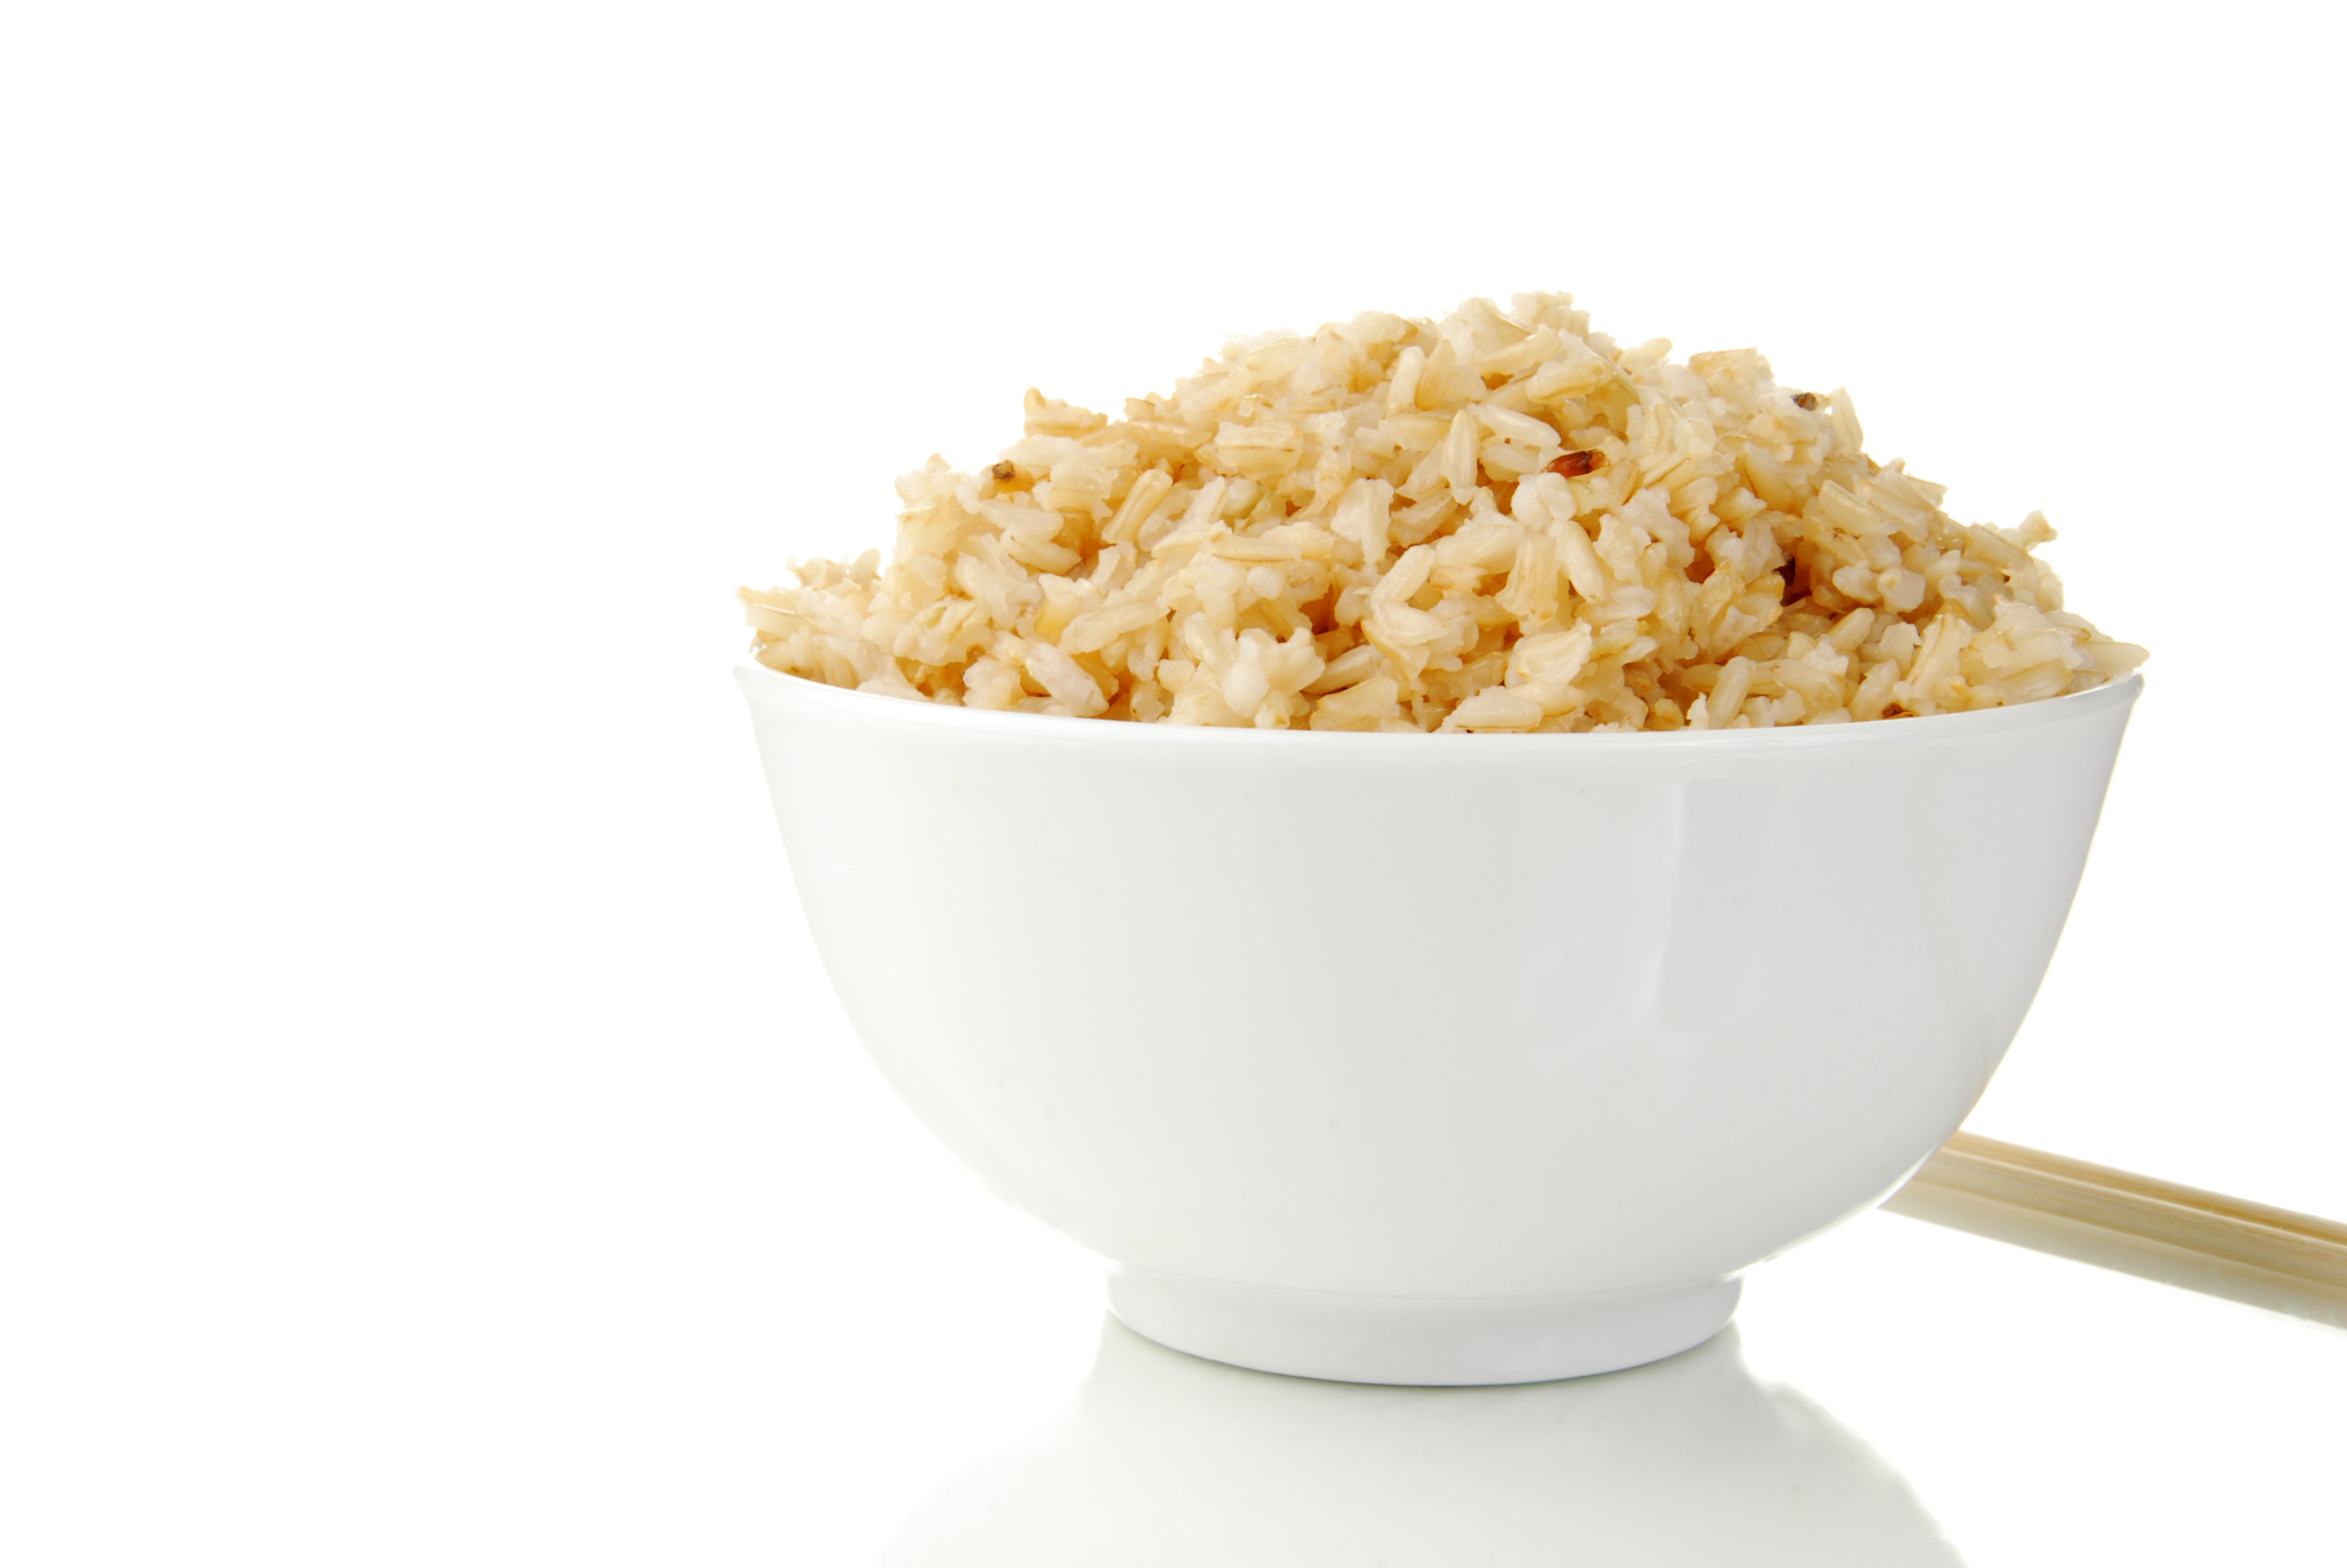 The Difference Between Insoluble And Soluble Fiber